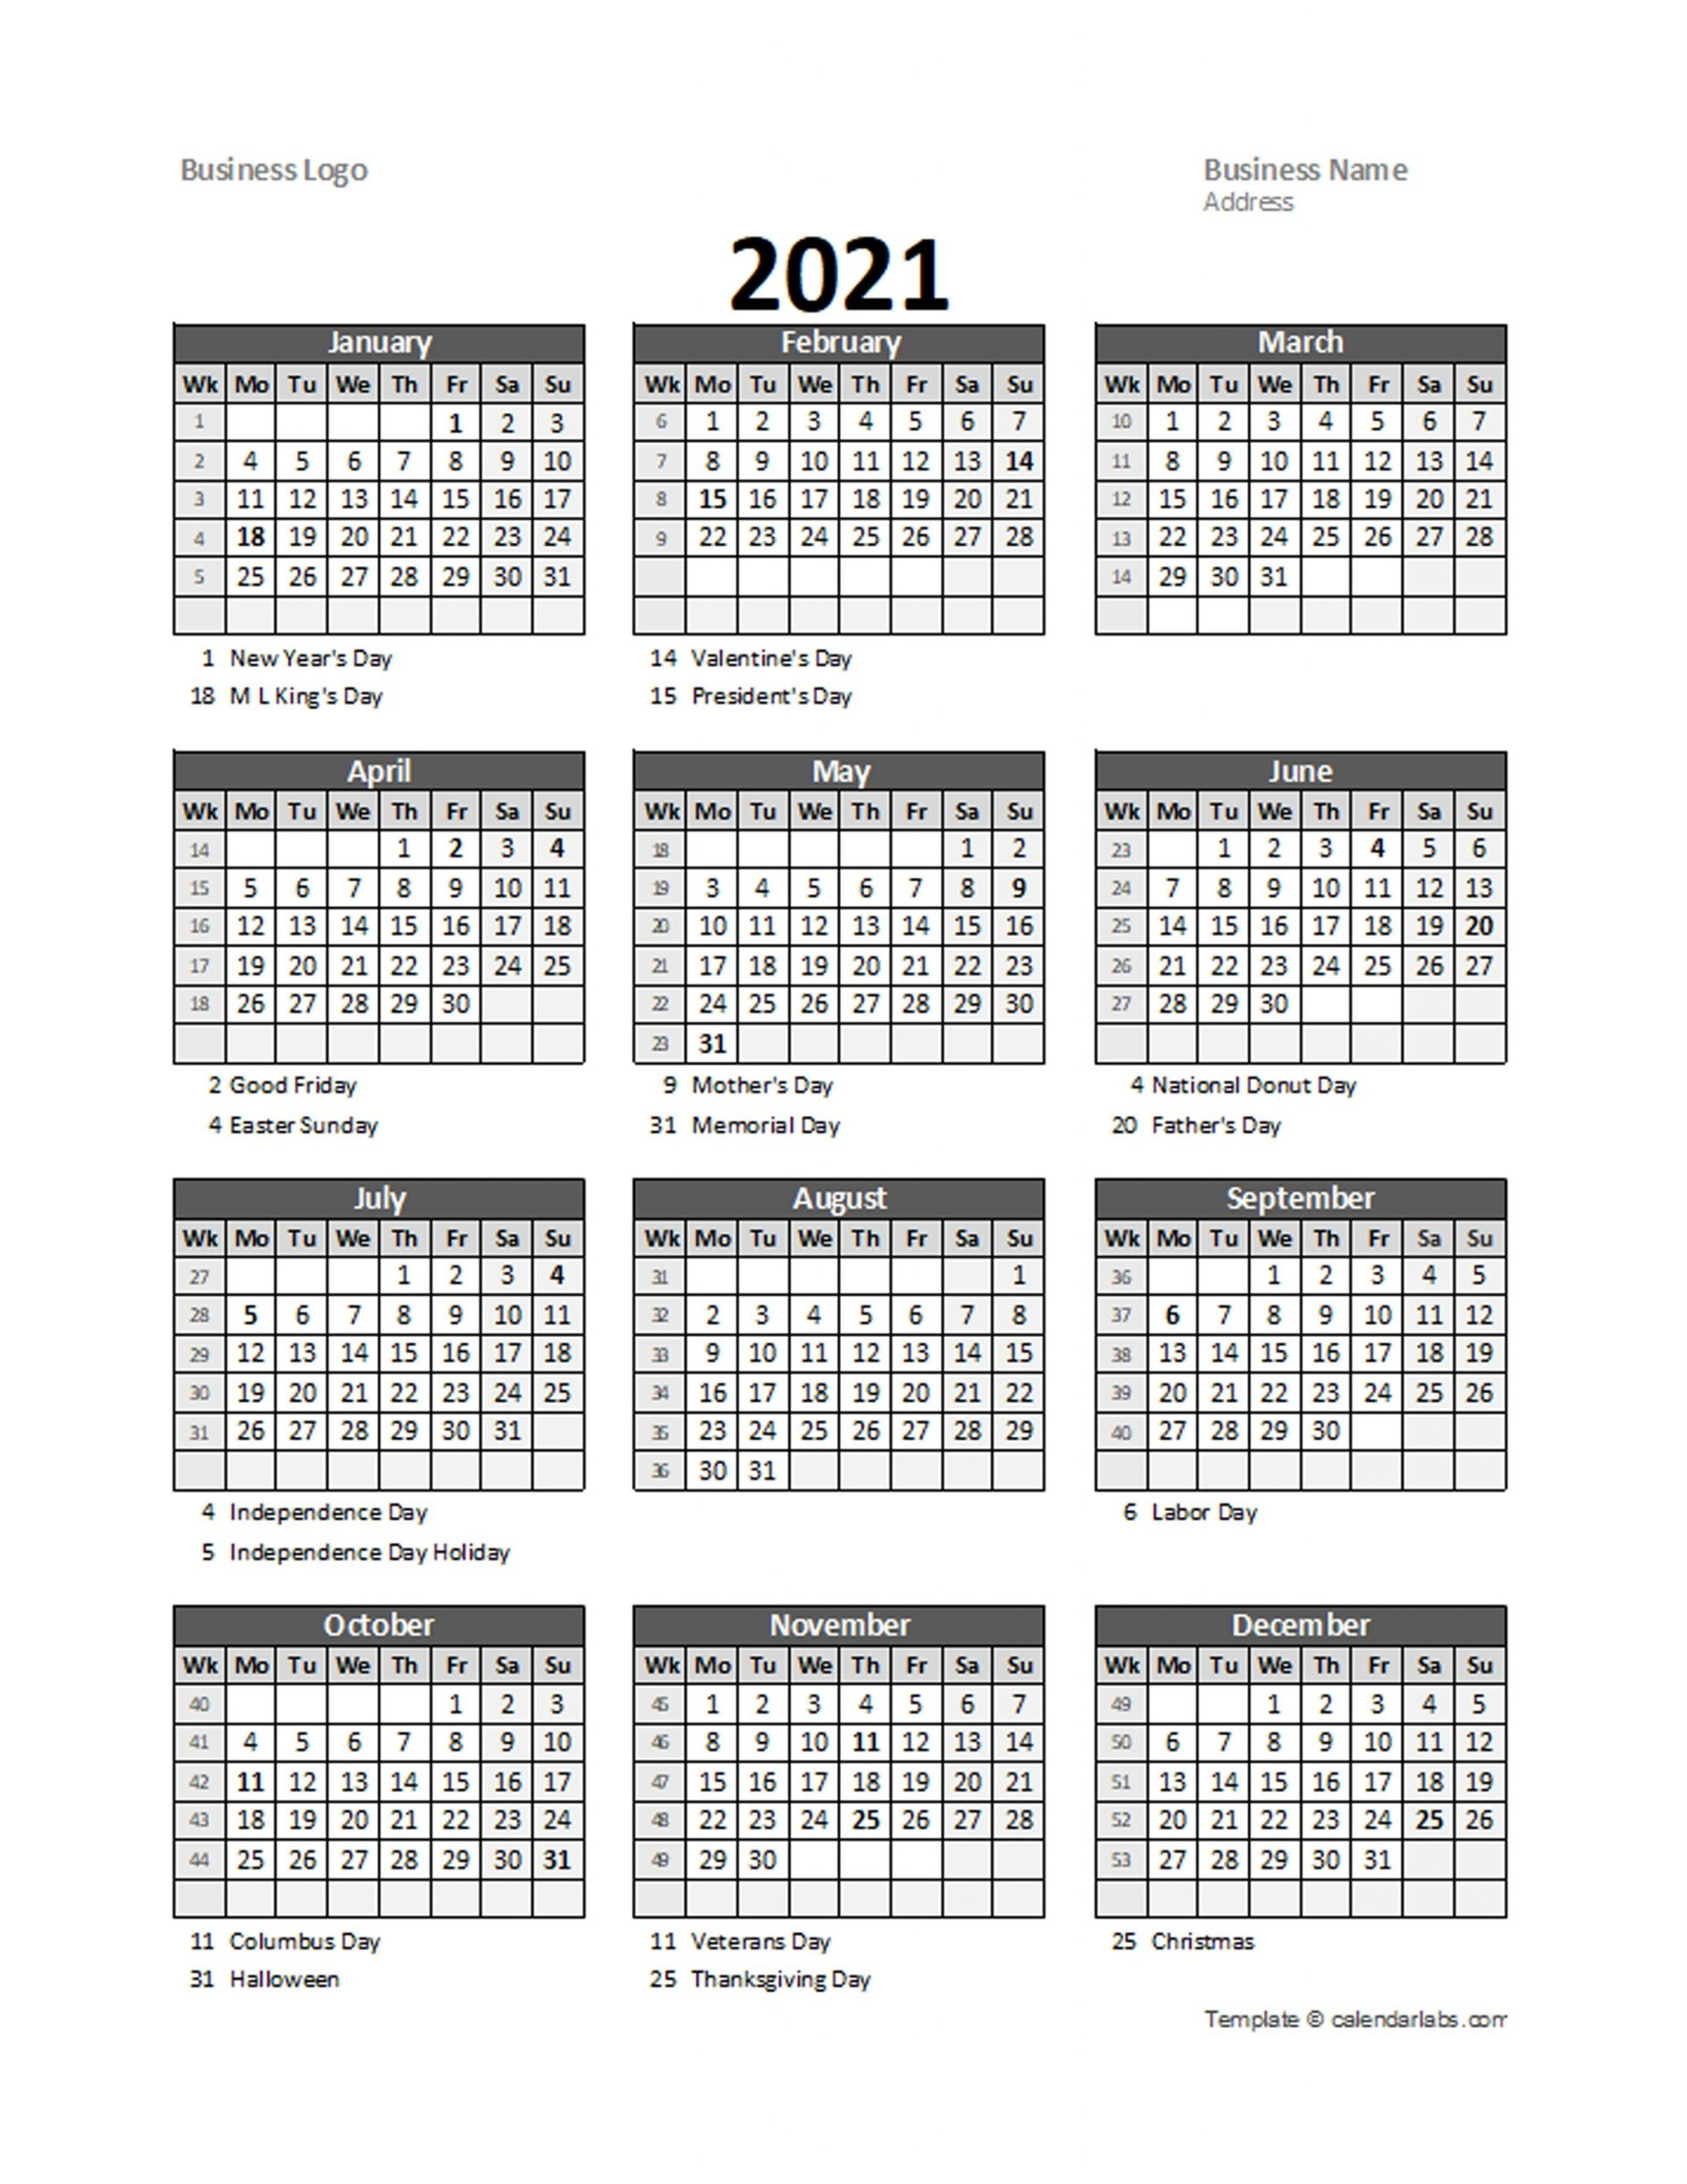 2021 Yearly Business Calendar With Week Number - Free Printable Templates within Calendar With Numbered Days 2021